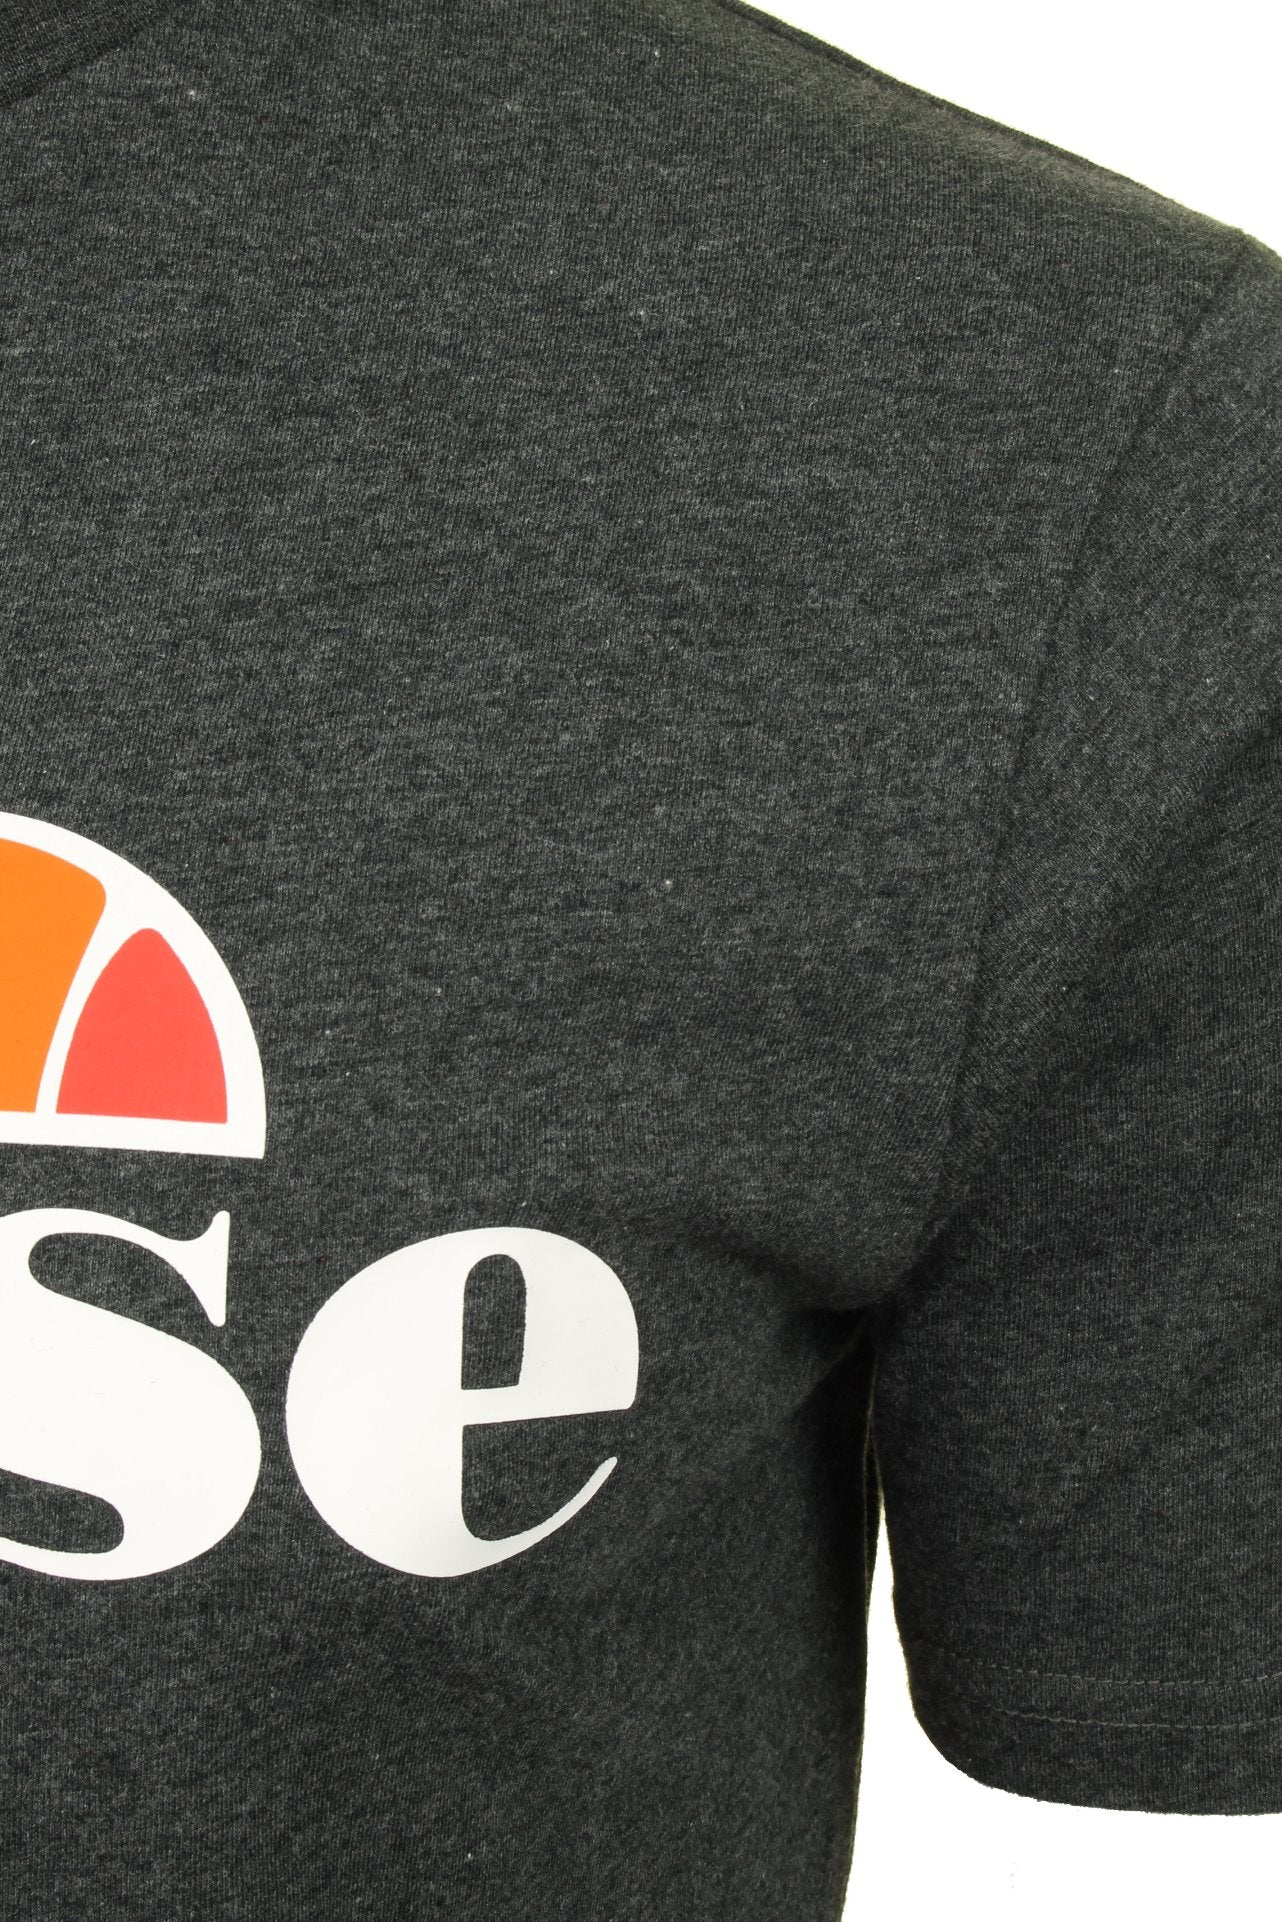 Ellesse Mens Logo Front Crew Neck T-Shirt 'PRADO' - Short Sleeved_02_Shc07405_Dark Grey Marl